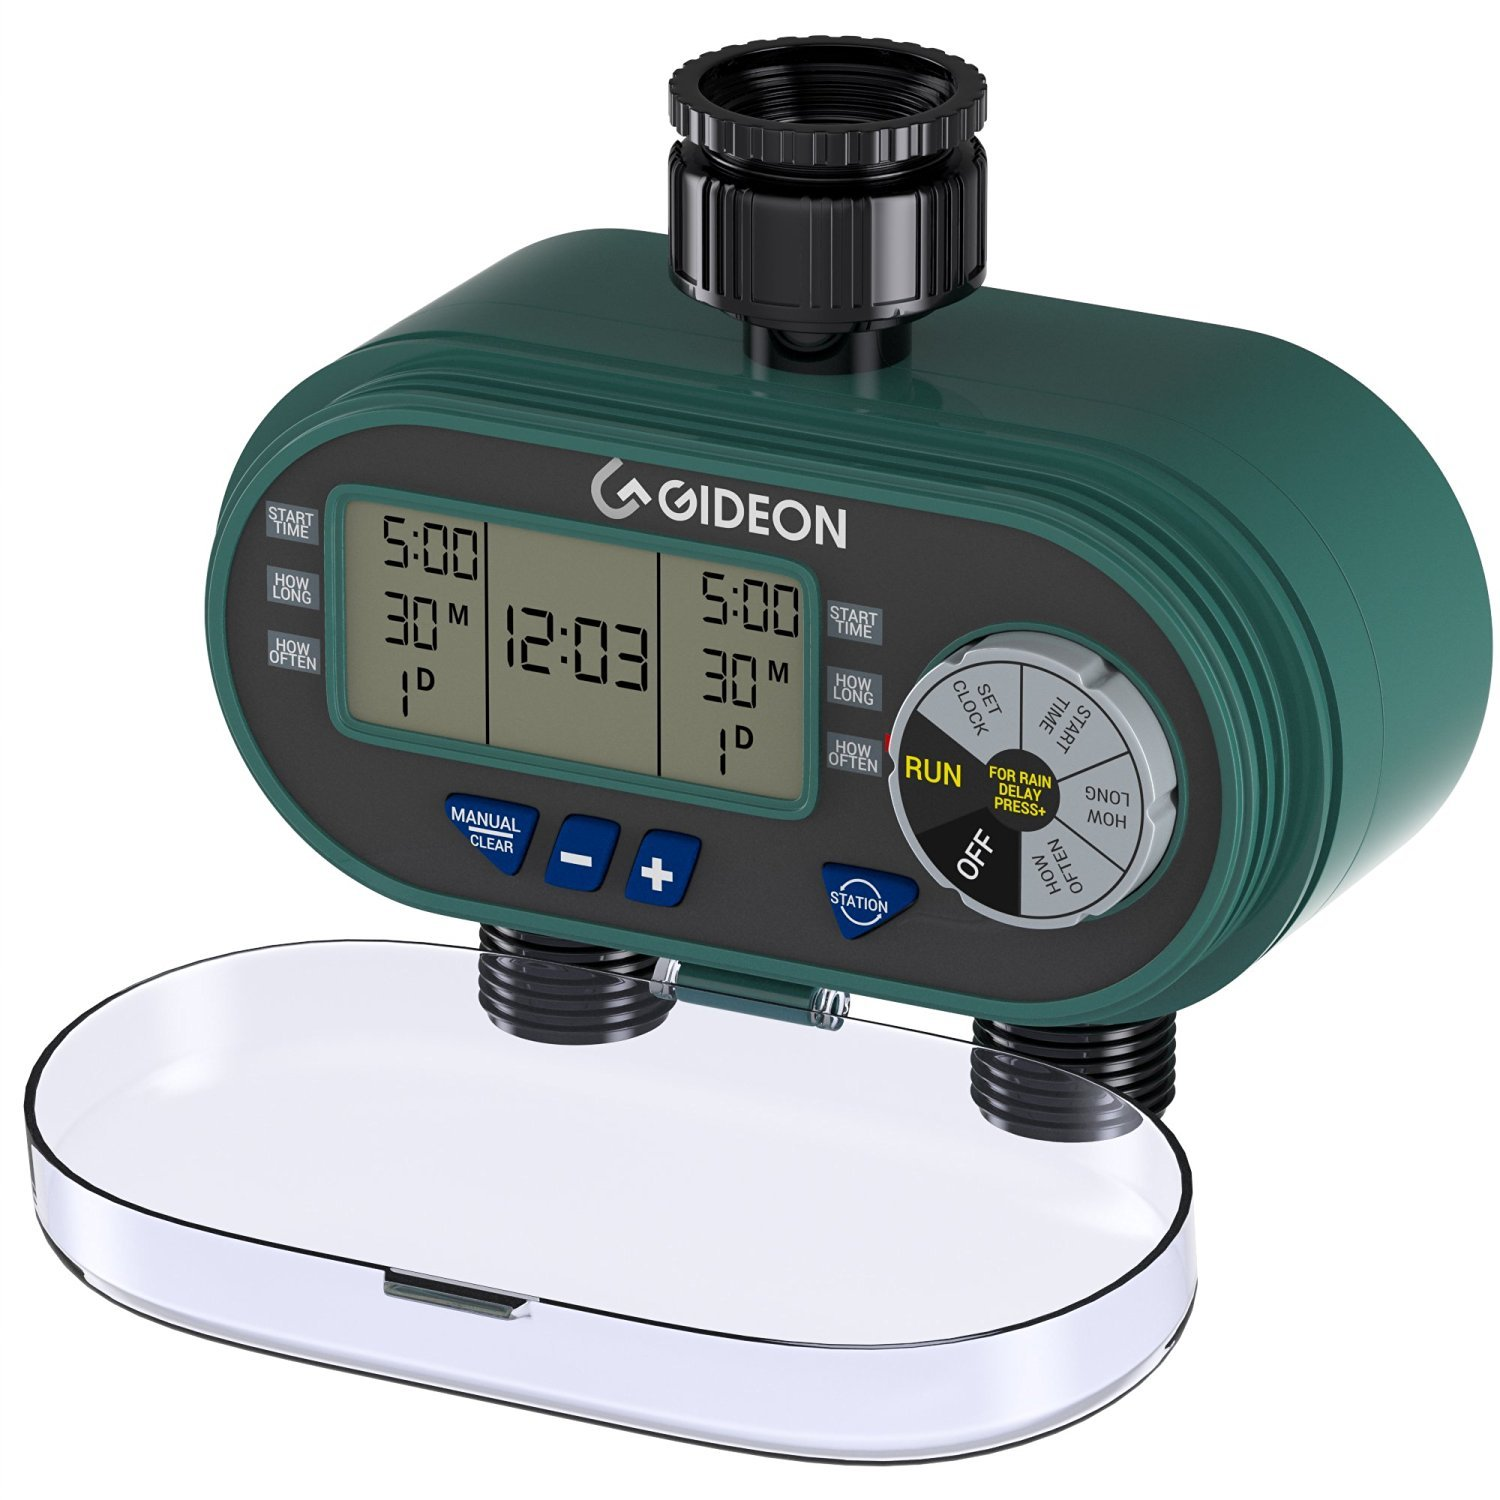 Gideon Electronic Dual-valve Hose Irrigation Water Timer Sprinkler System – Simple Hose Connection with Easy to Use Digital System by Gideon